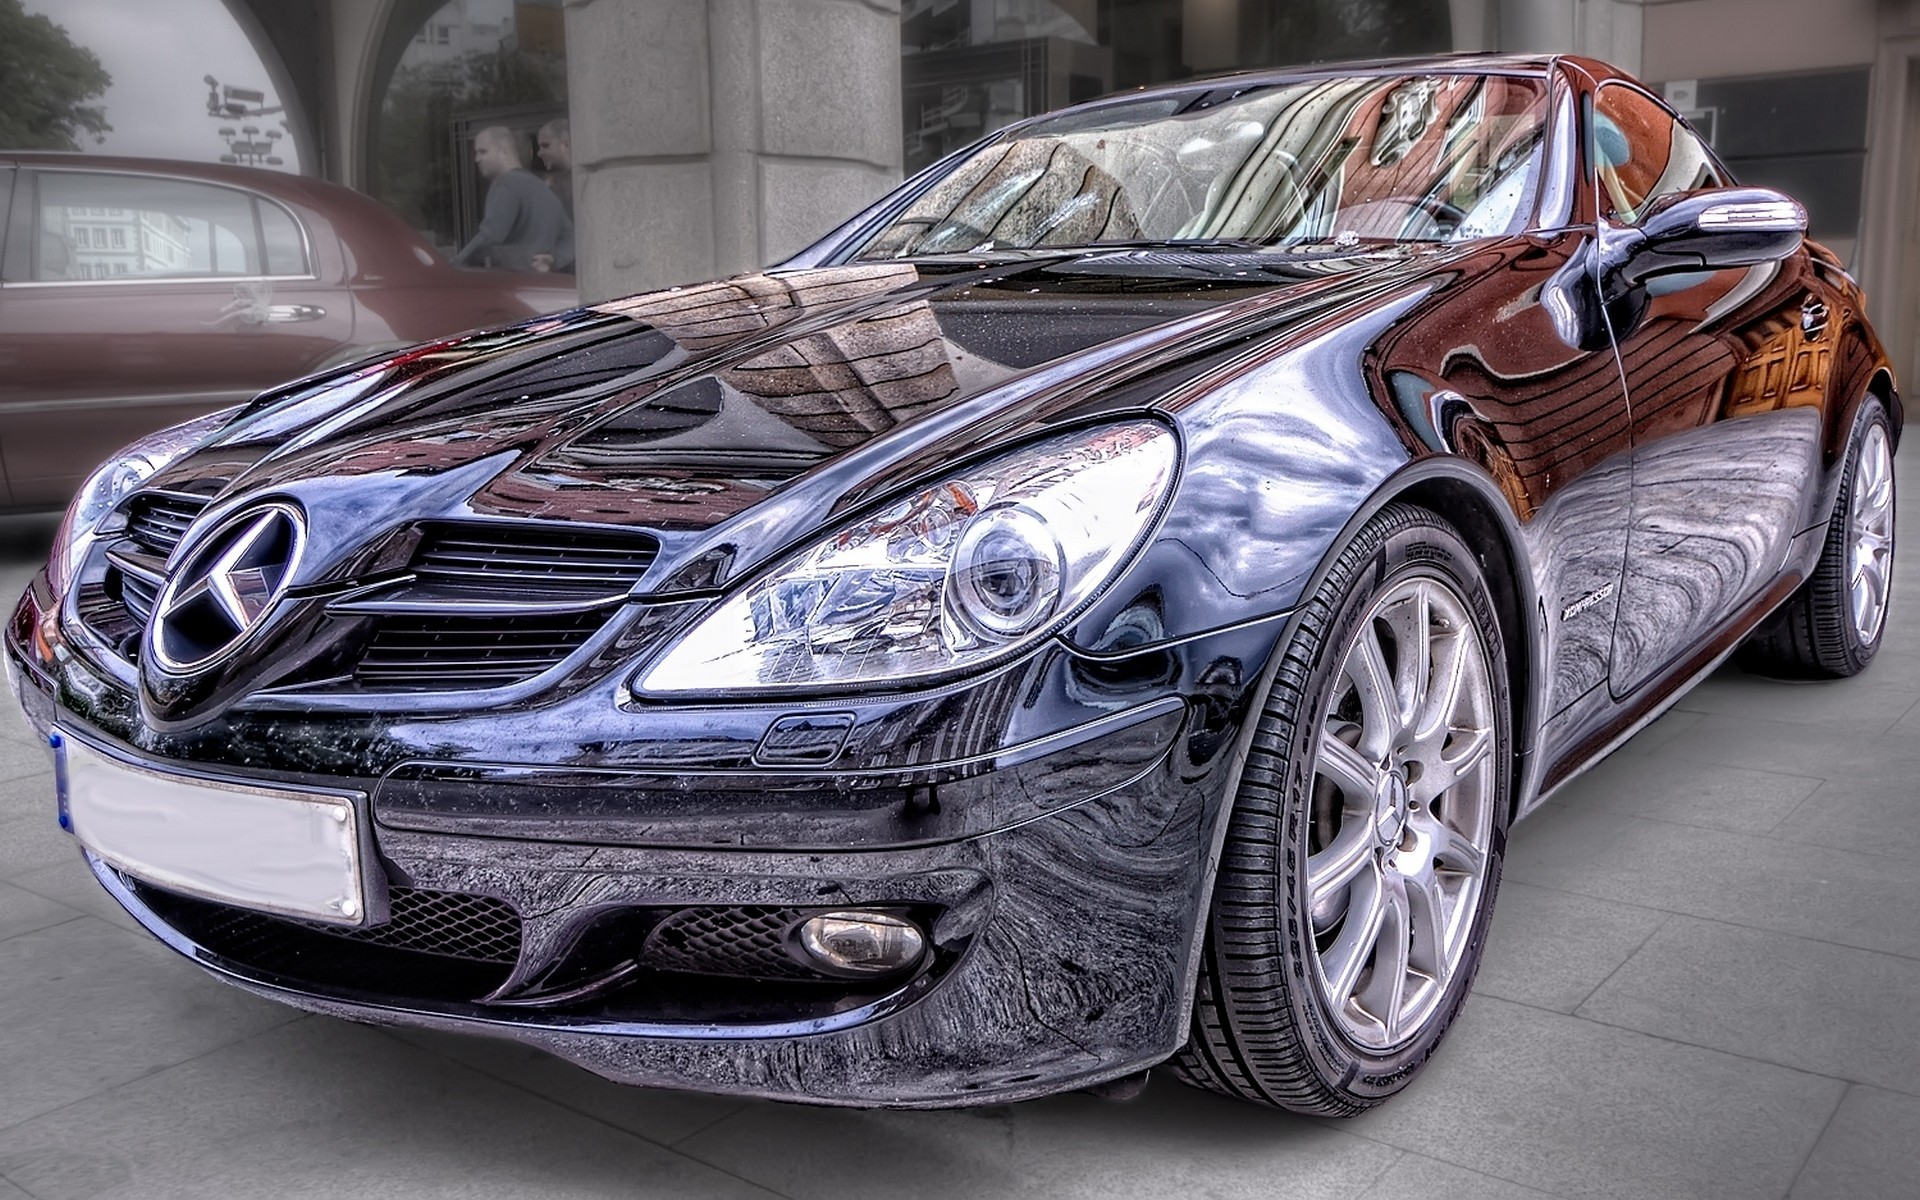 cars HDR Photography Mercedes-Benz